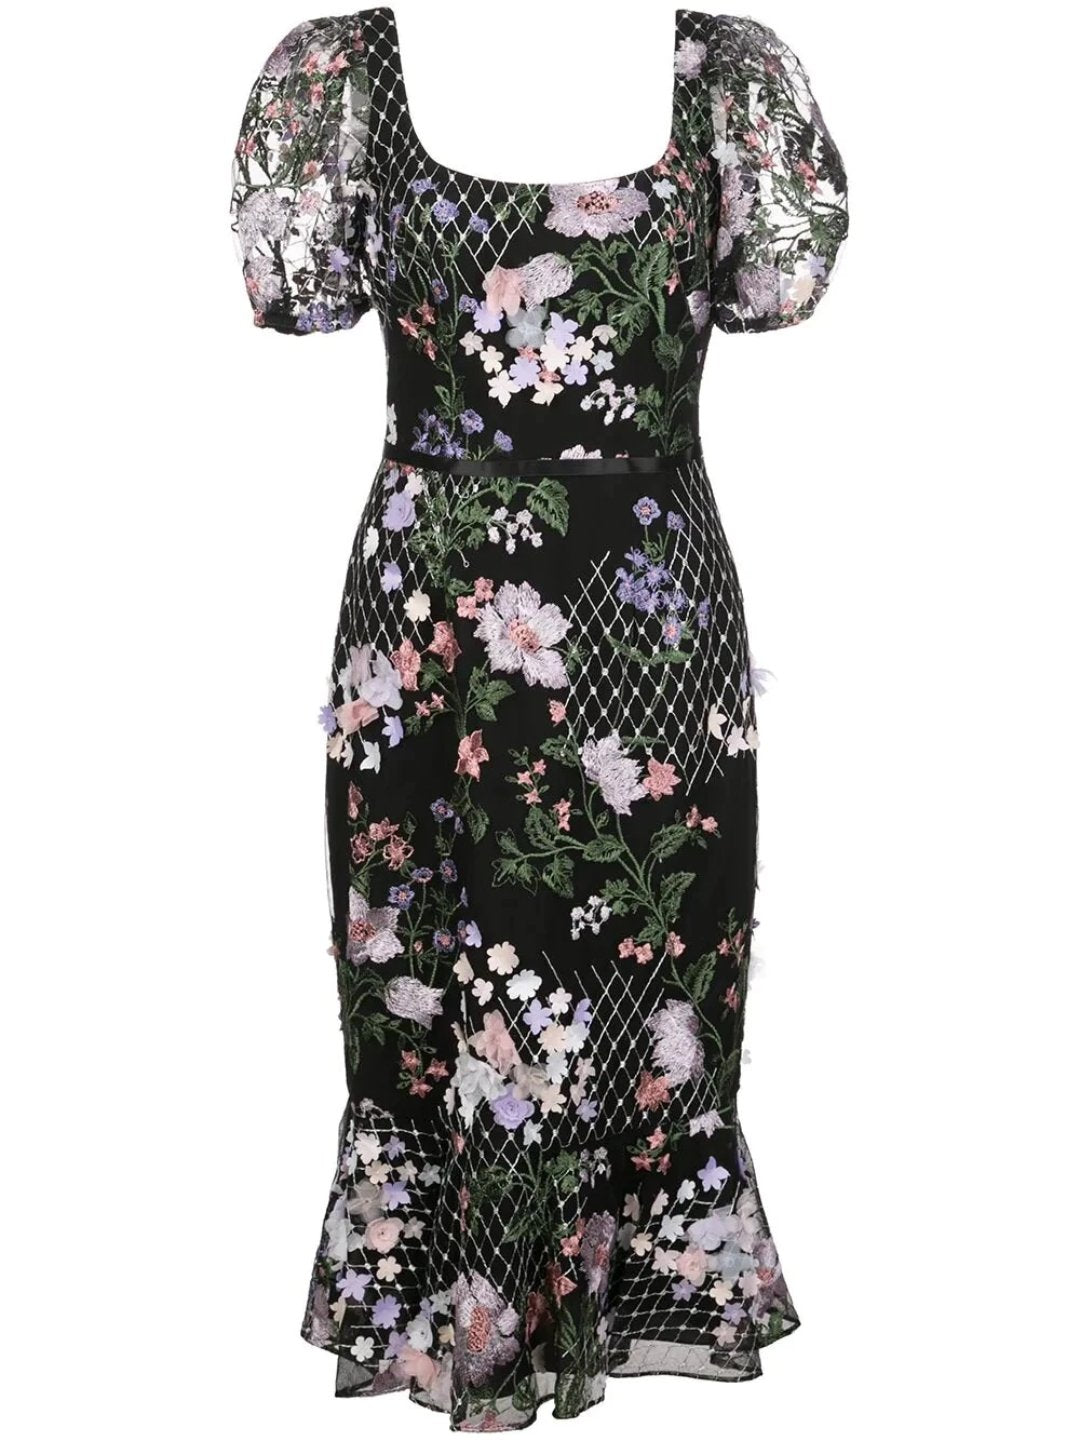 3D Floral Embroidered Cocktail Dress